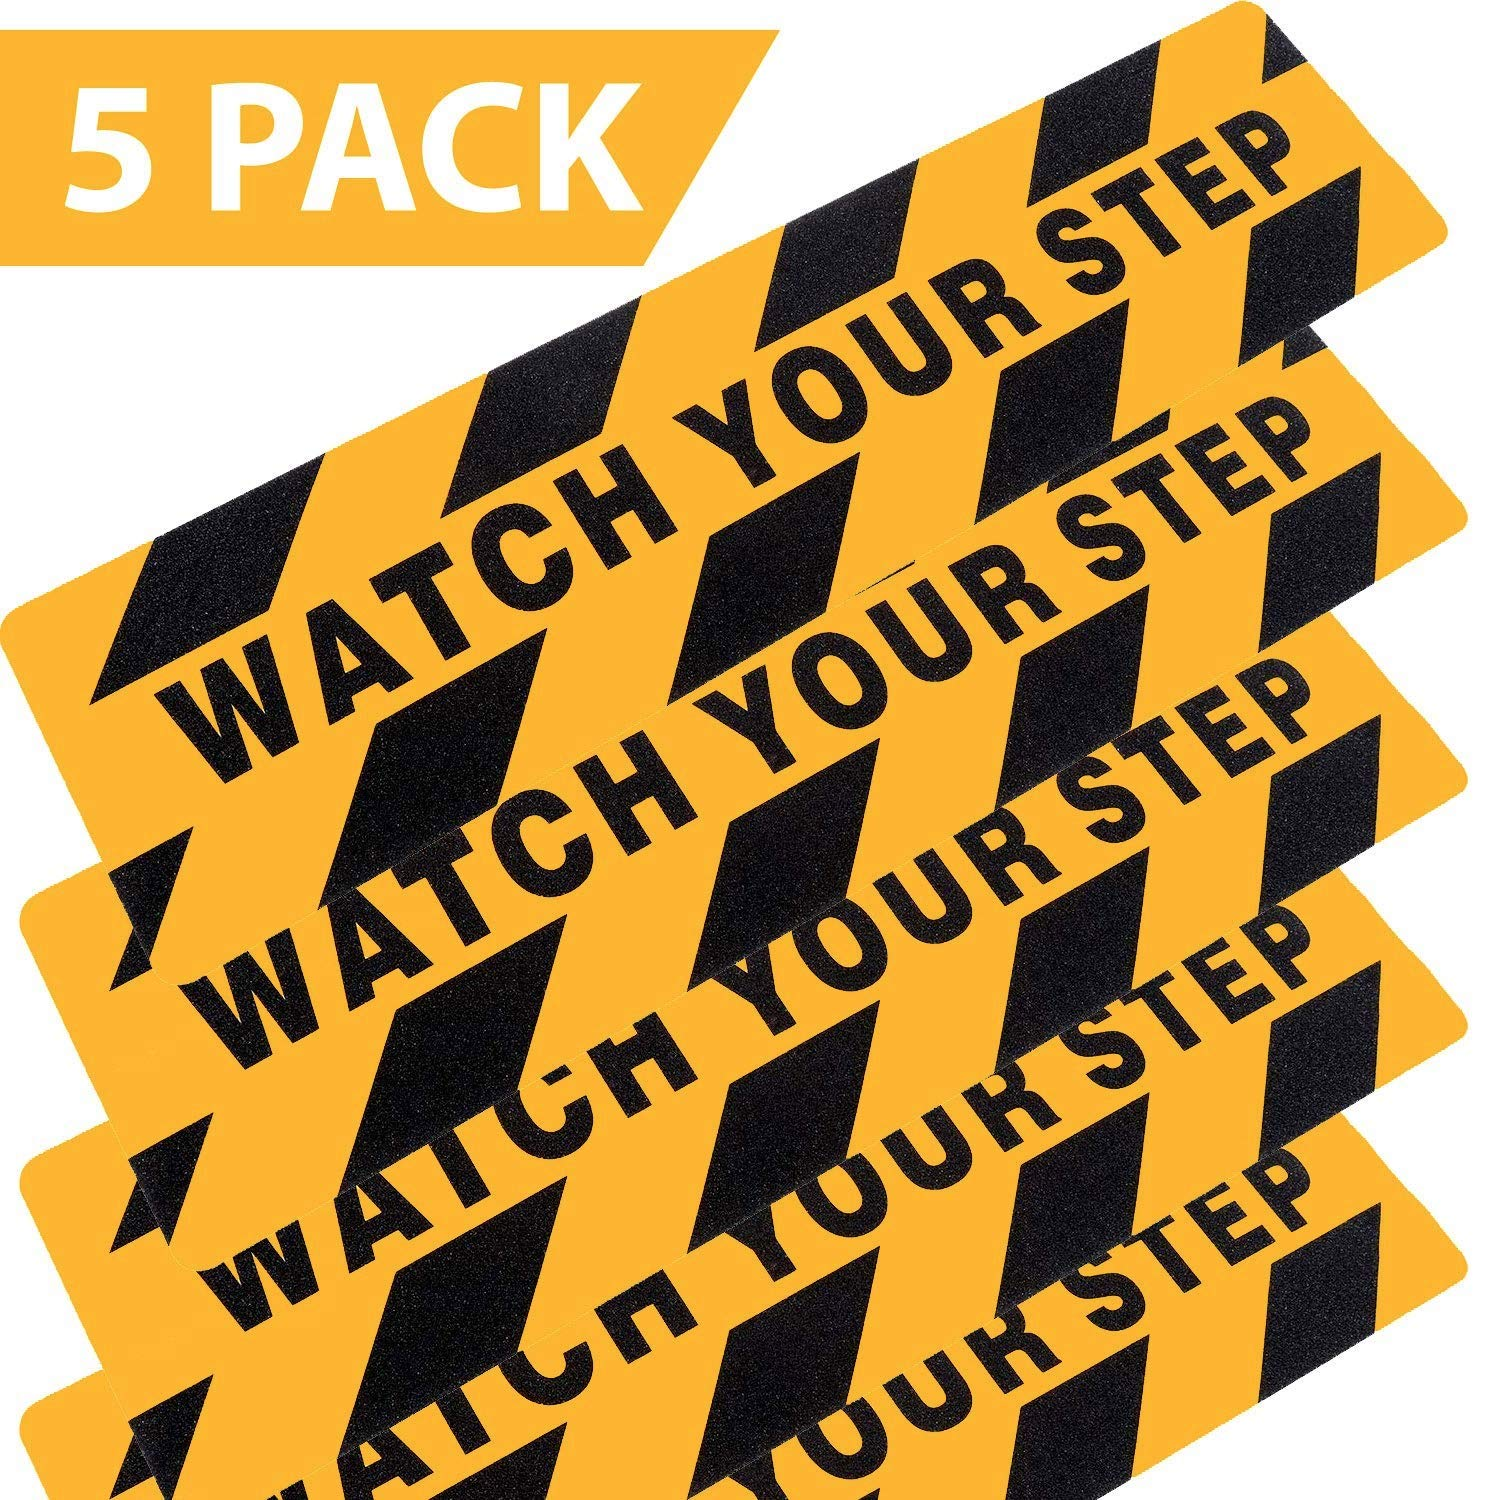 Mobling Watch Your Step Anti Slip/Skid Abrasive Sticker [5 Pack] - Safety for OSHA/Winter Ice & Slippery Steps